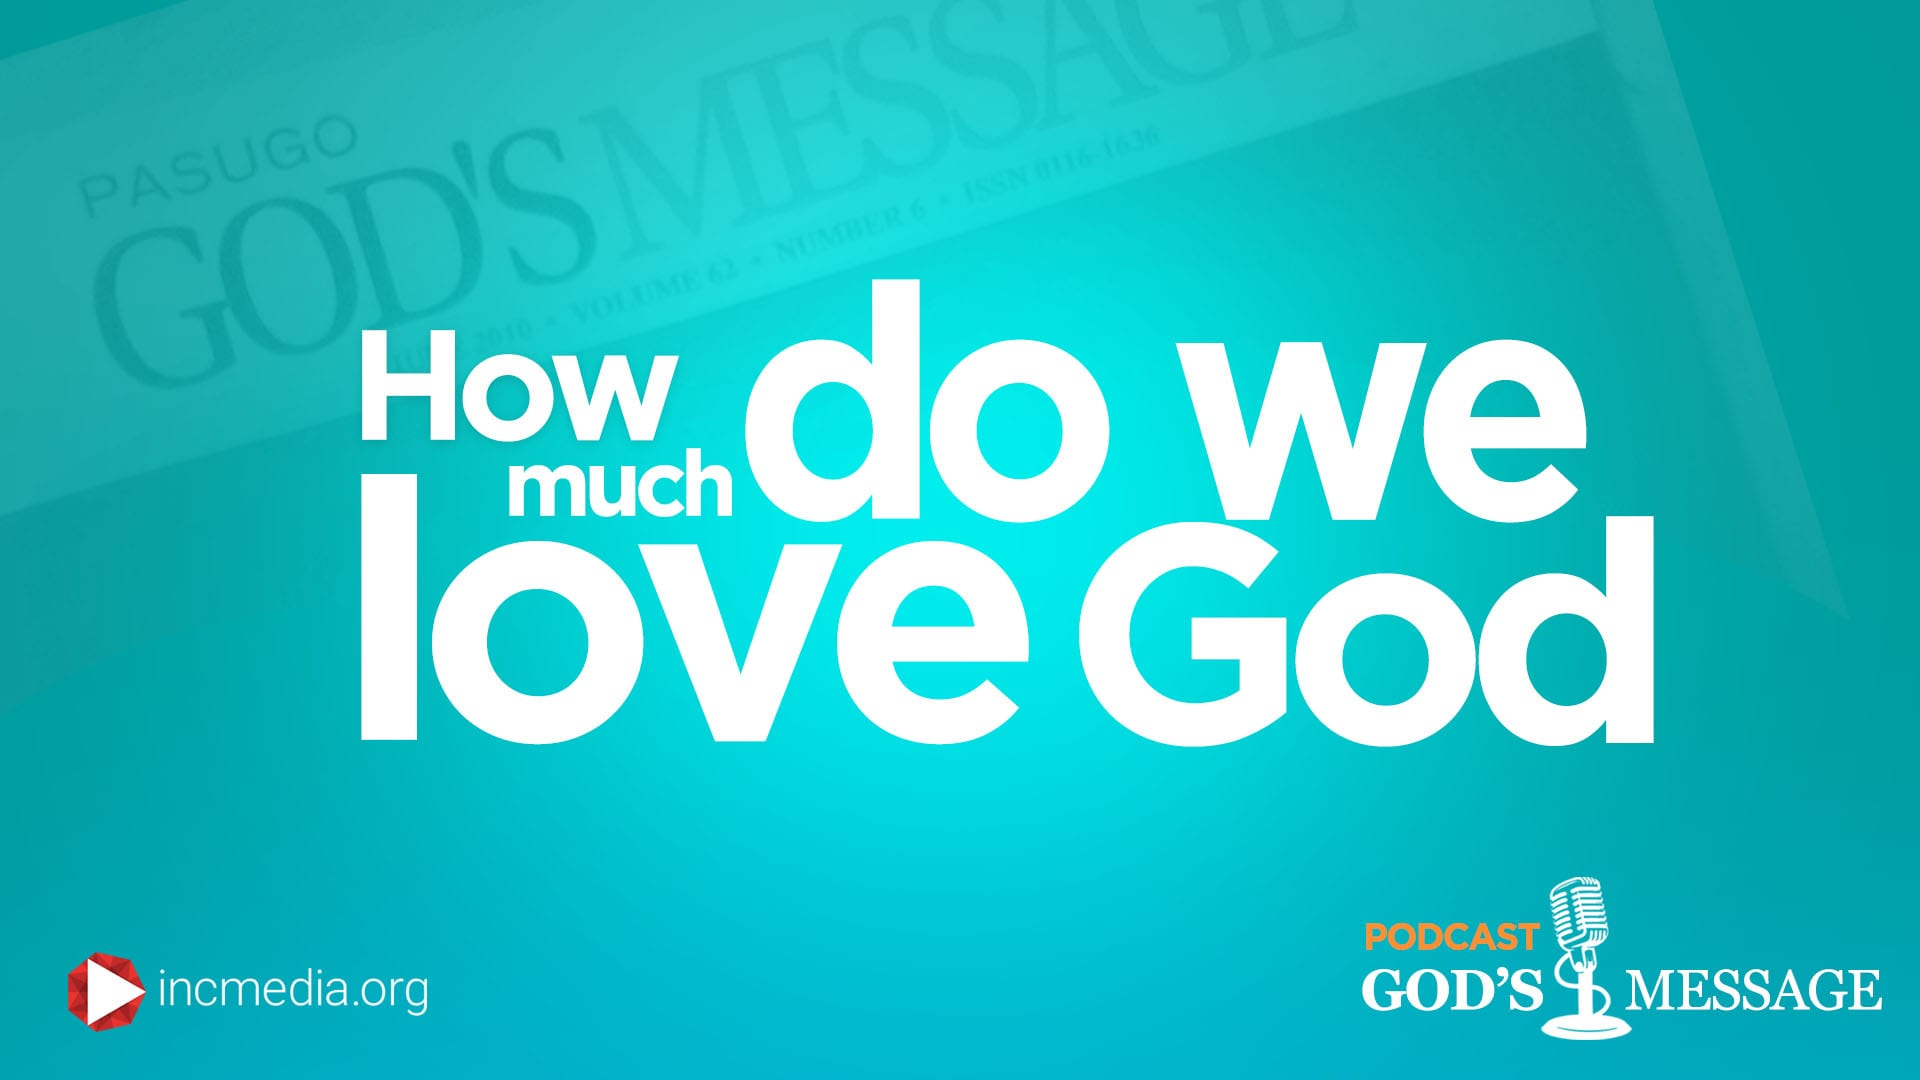 How much do we love God God's Message Podcast